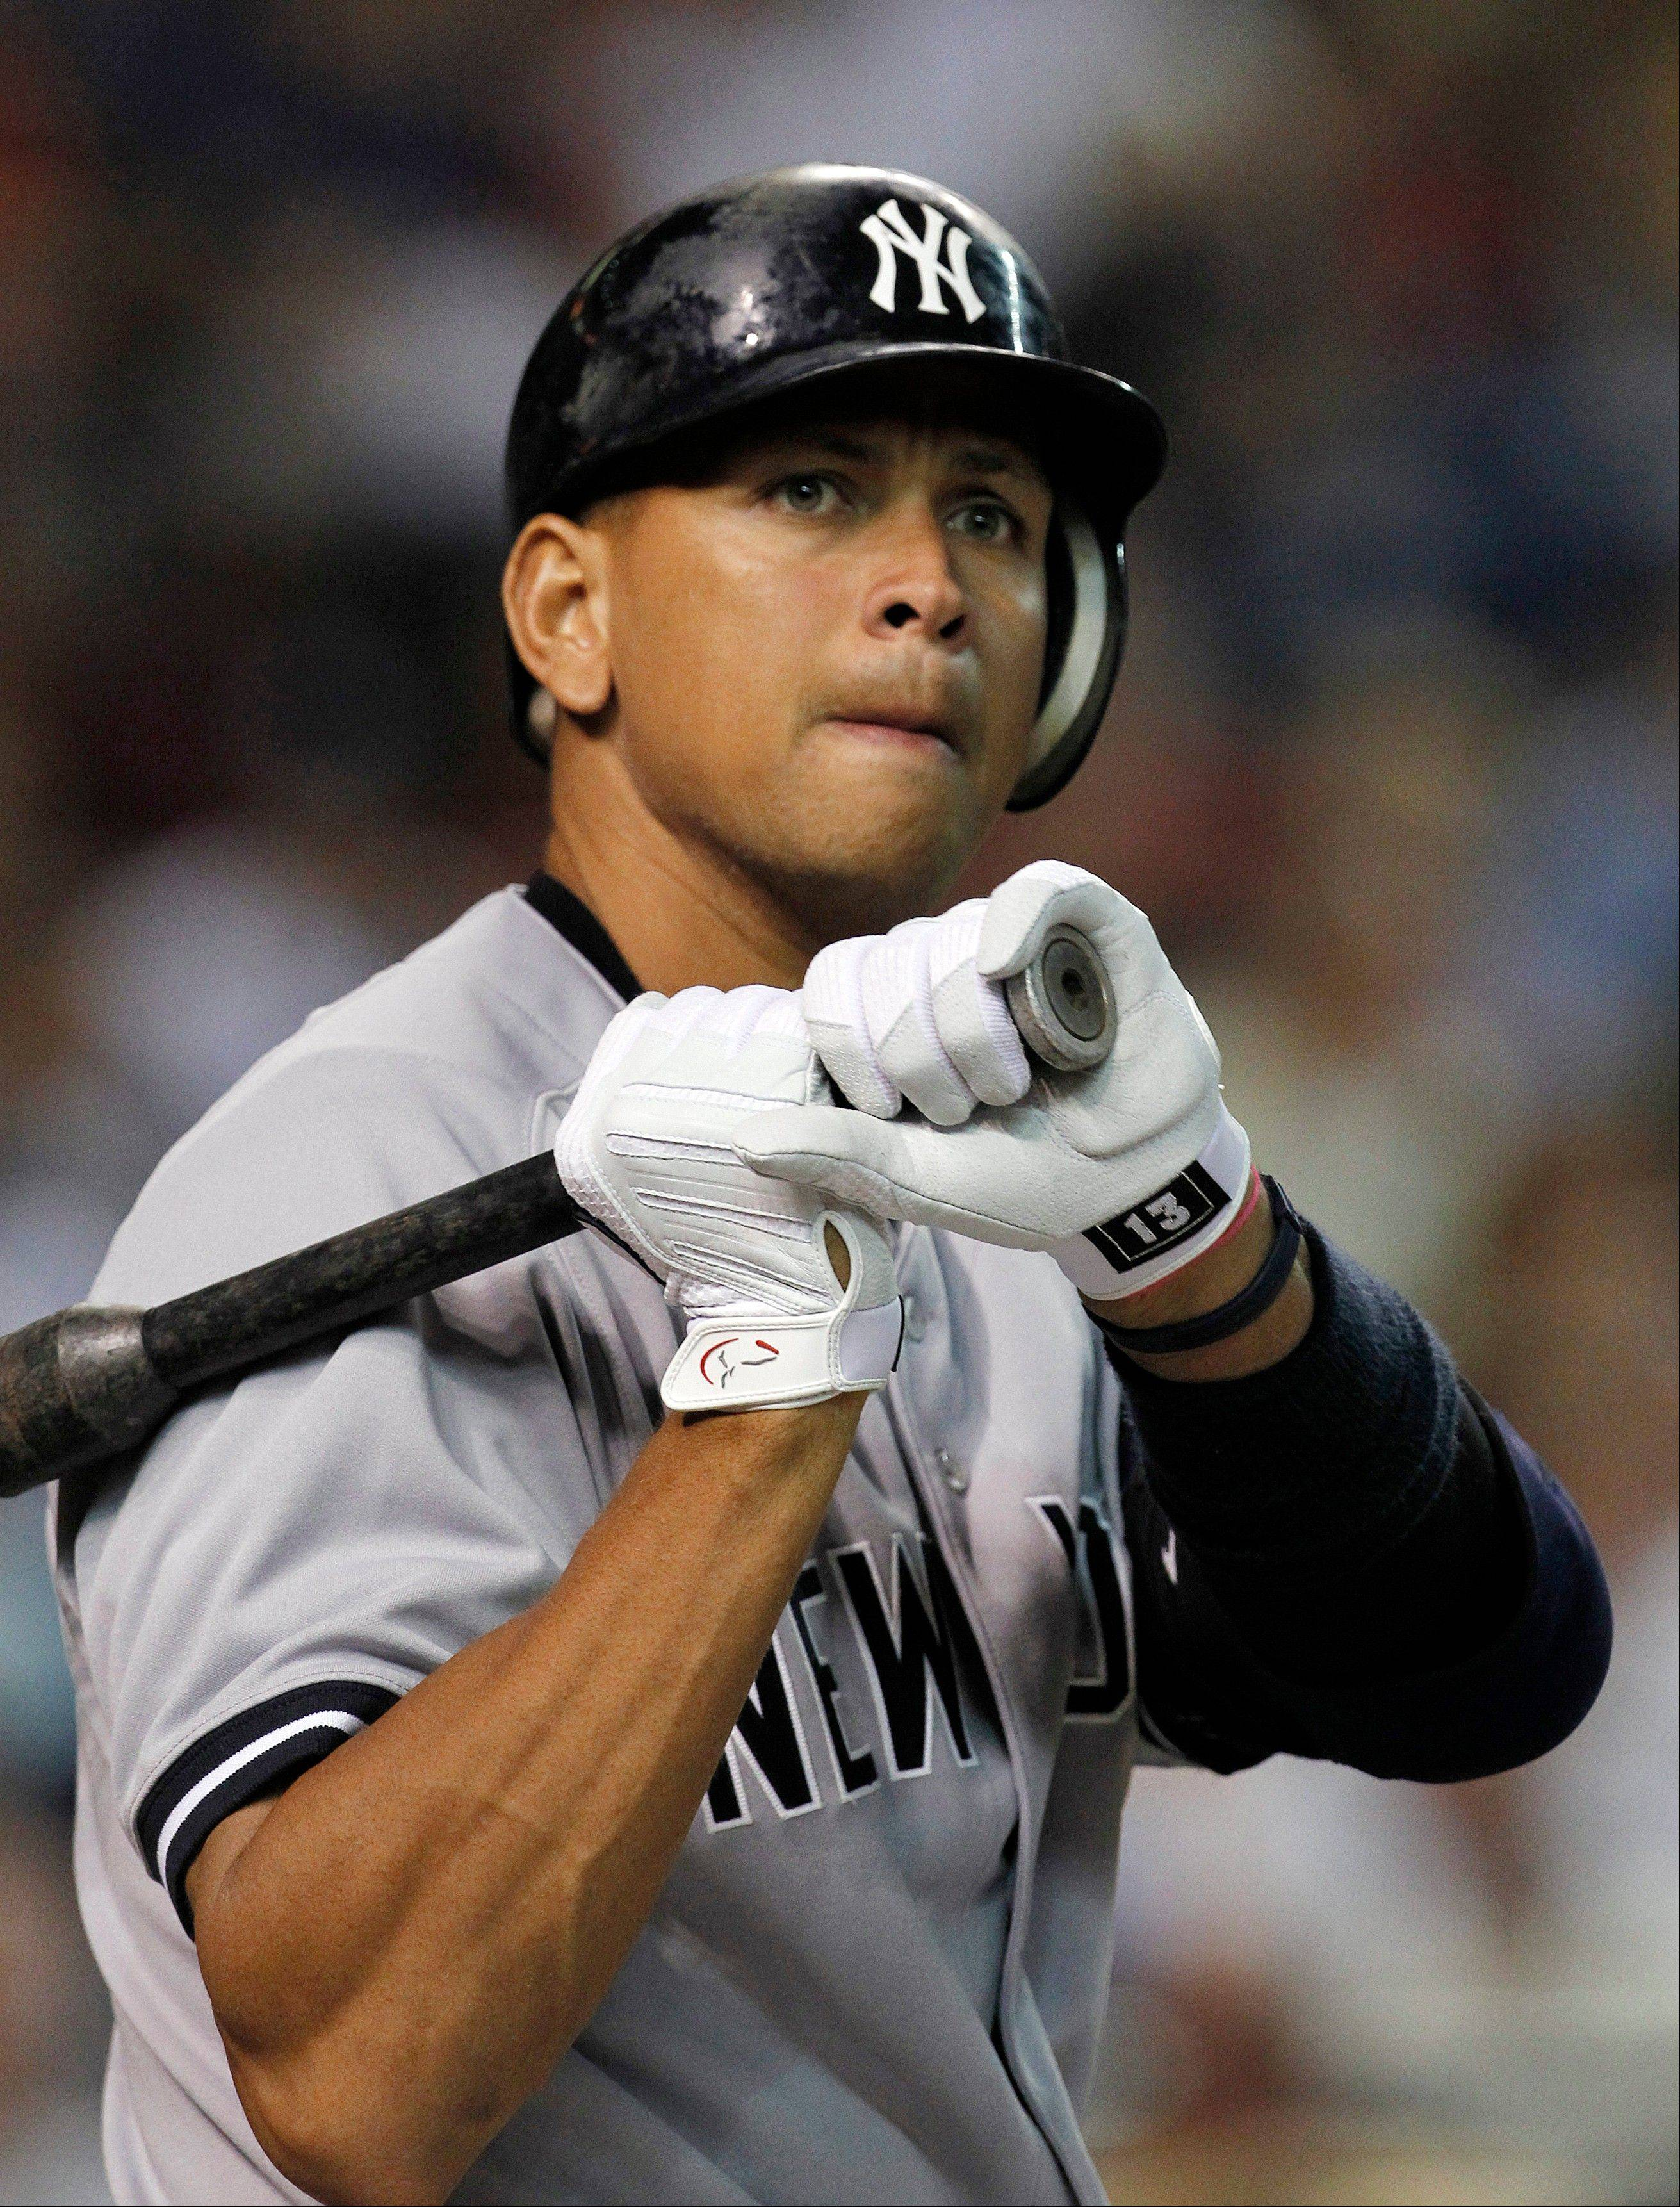 After a week�s worth of high drama, second-guessing and radio interviews, it seems Rodriguez is about to be lumped with New York Yankees who sort of just didn�t fit, failed or just faded away.